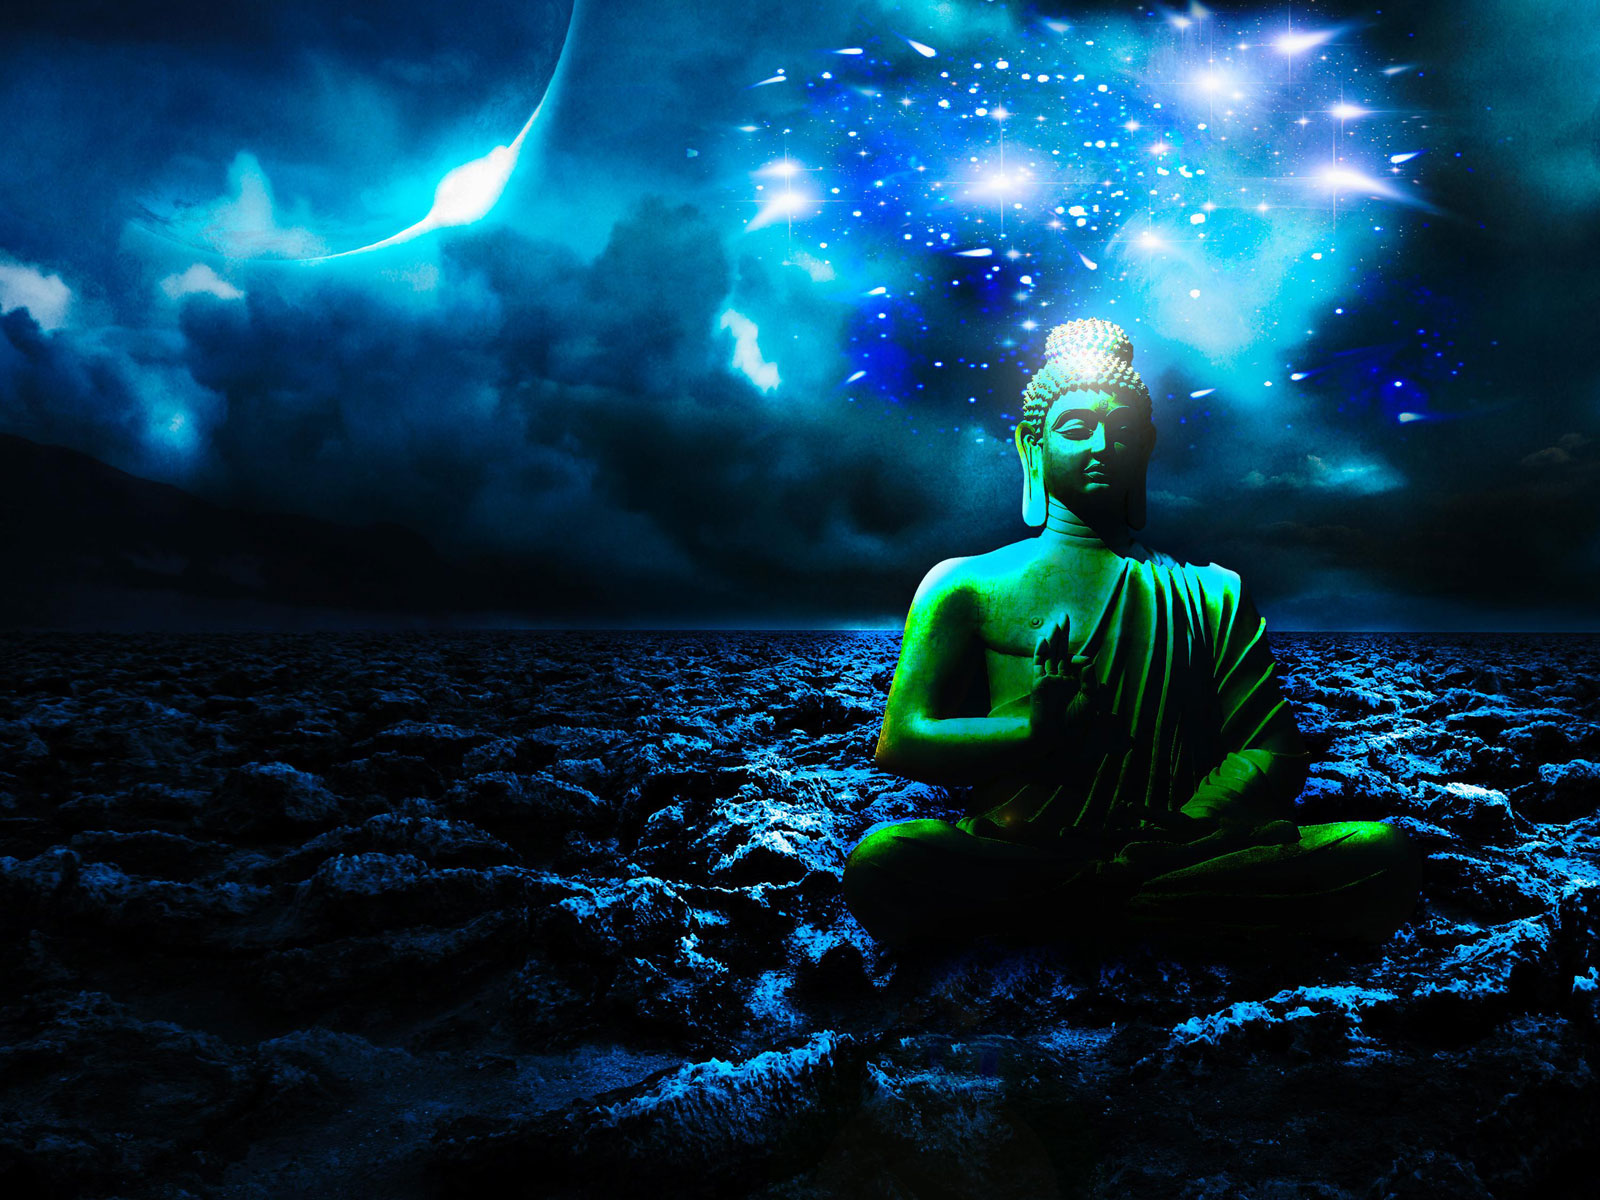 Buddha Meditation Wallpapers & Images Free Download